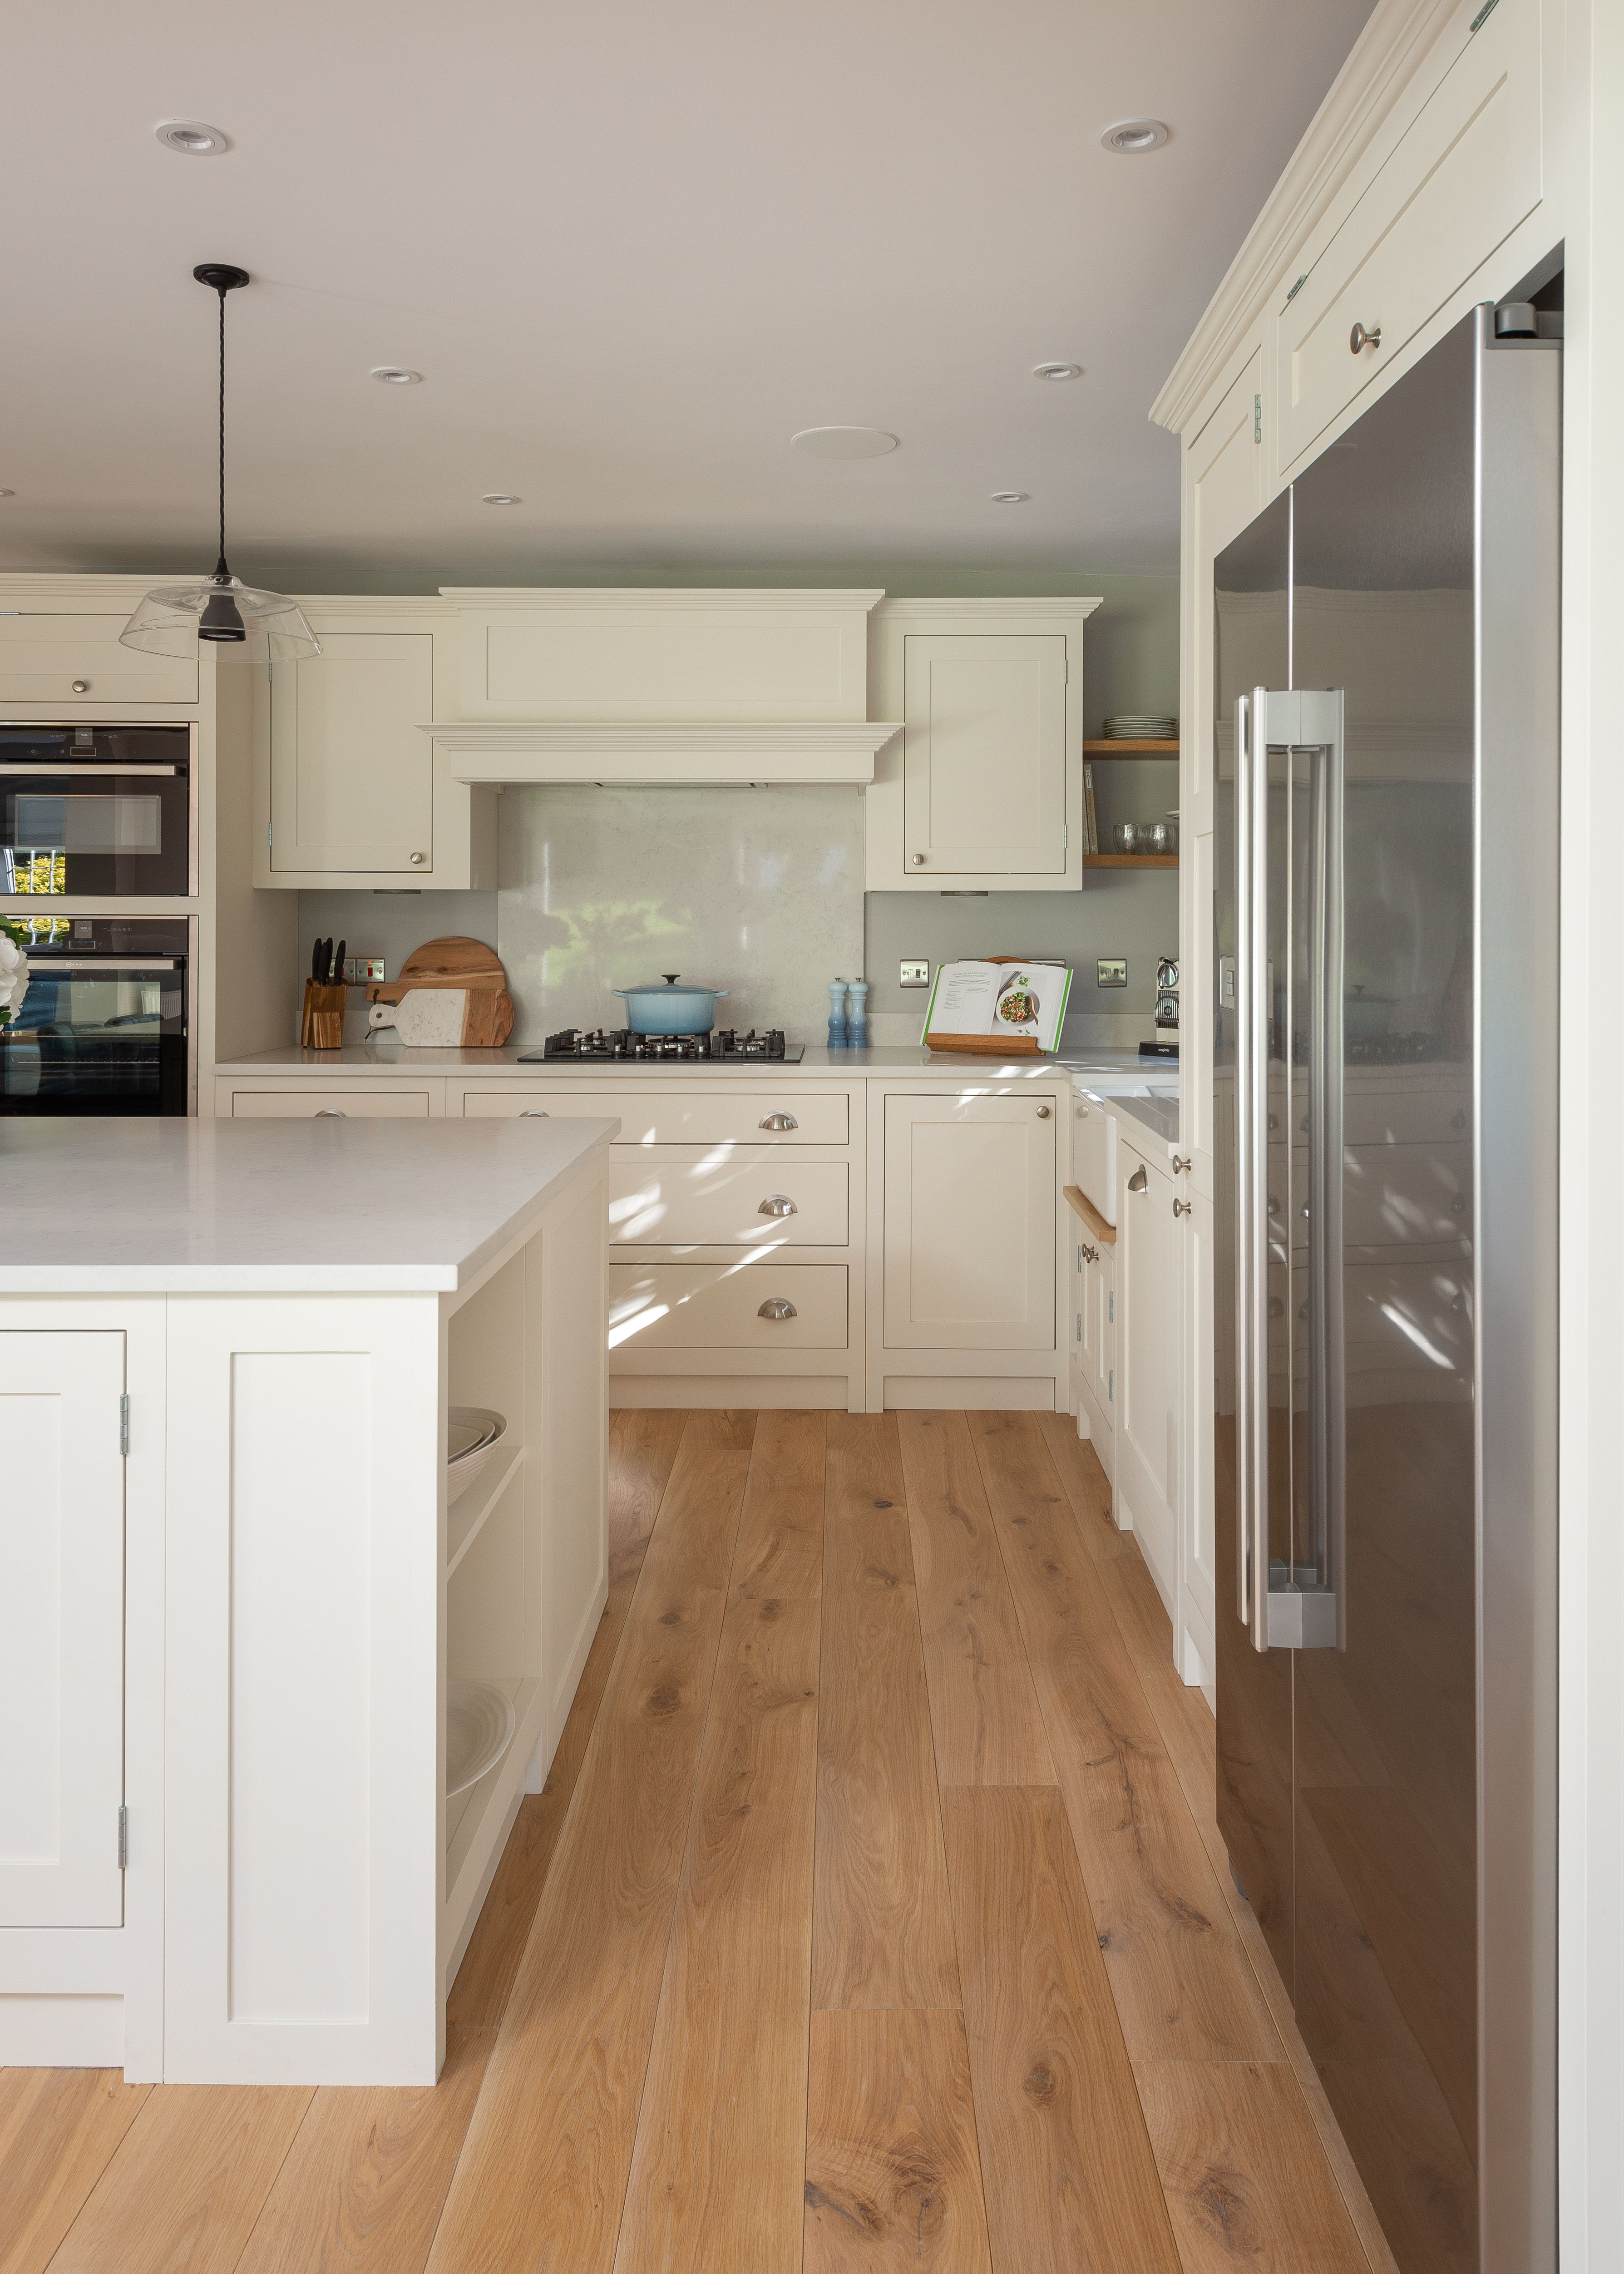 Shaker Kitchen Featuring A Mantle Painted In Cream Shaker Style